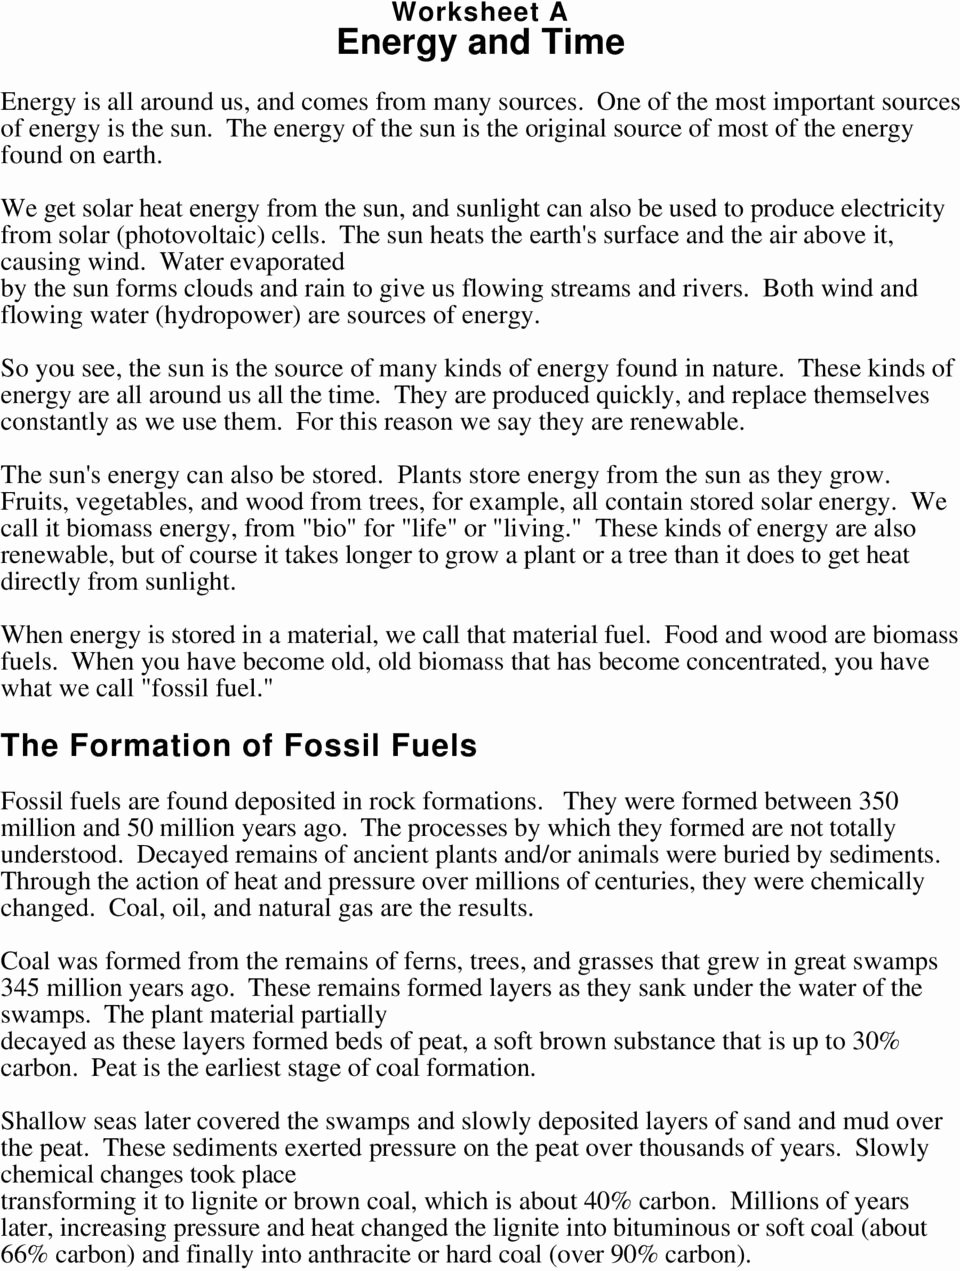 Fossil Fuels Worksheet Middle School New the formation Of Fossil Fuels Pdf Free Download